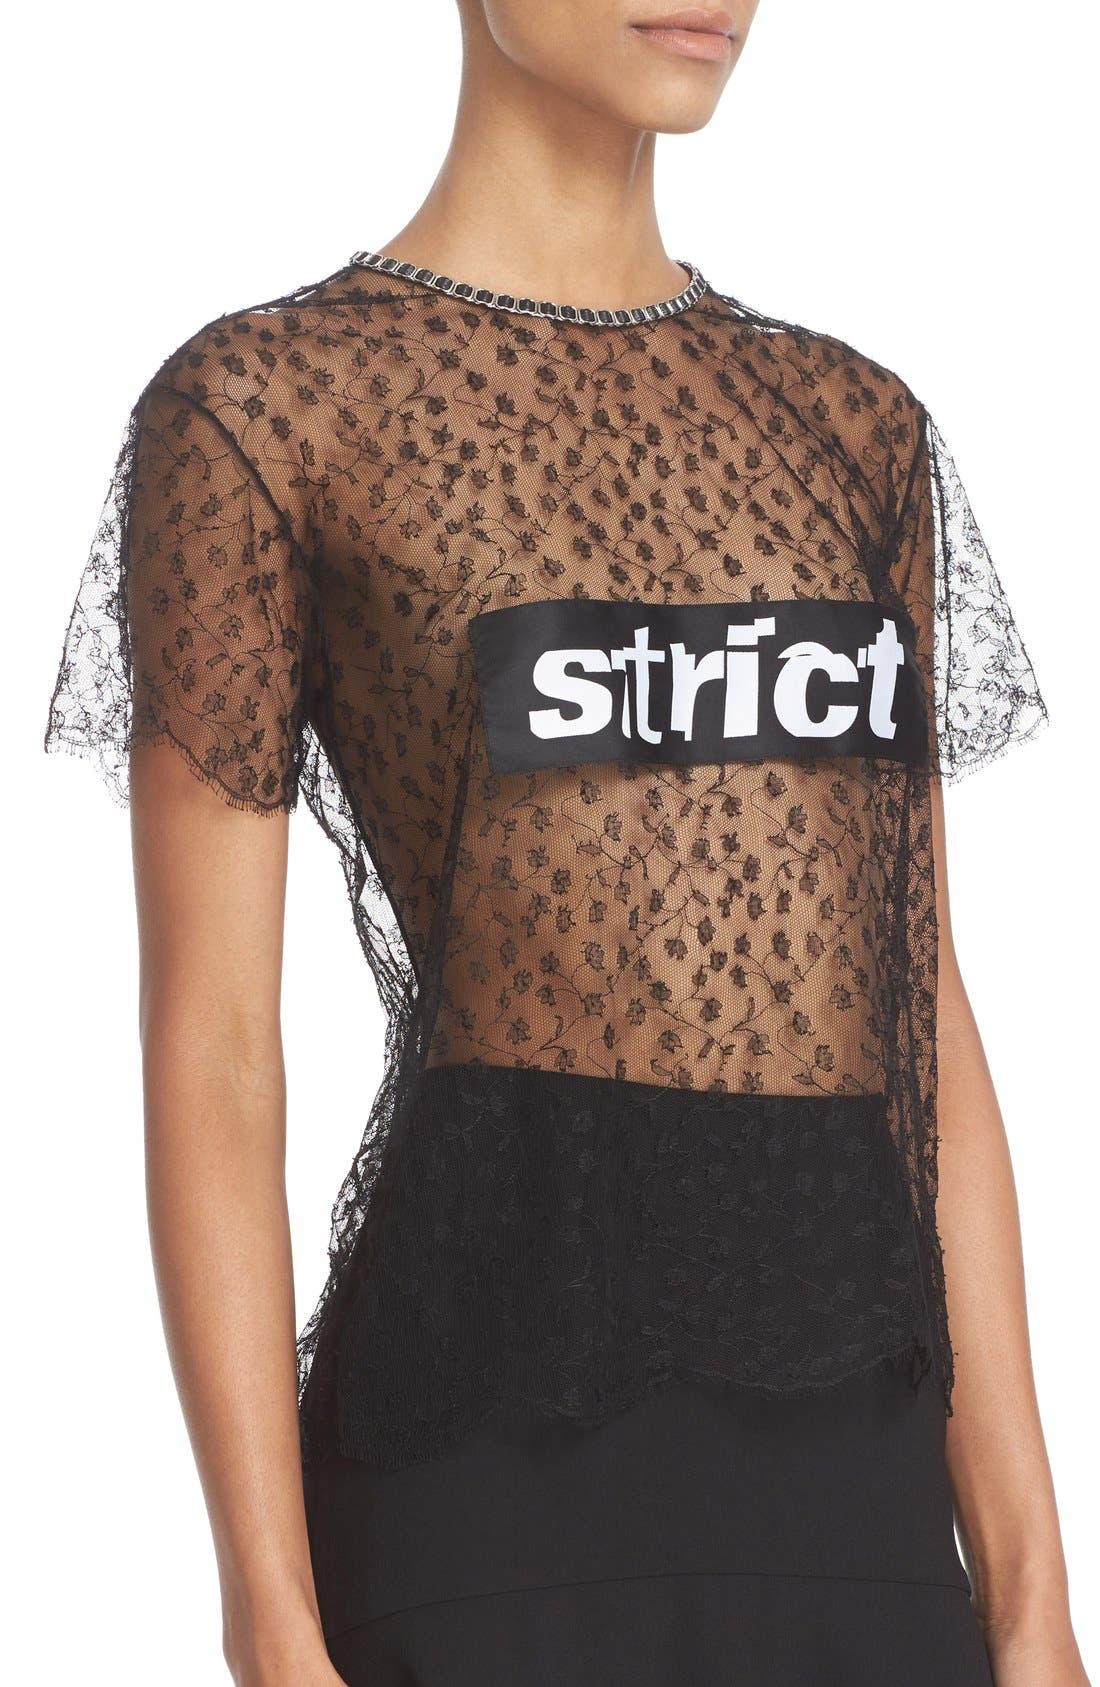 Alternate Image 3  - Alexander Wang 'Strict' Lace Tee